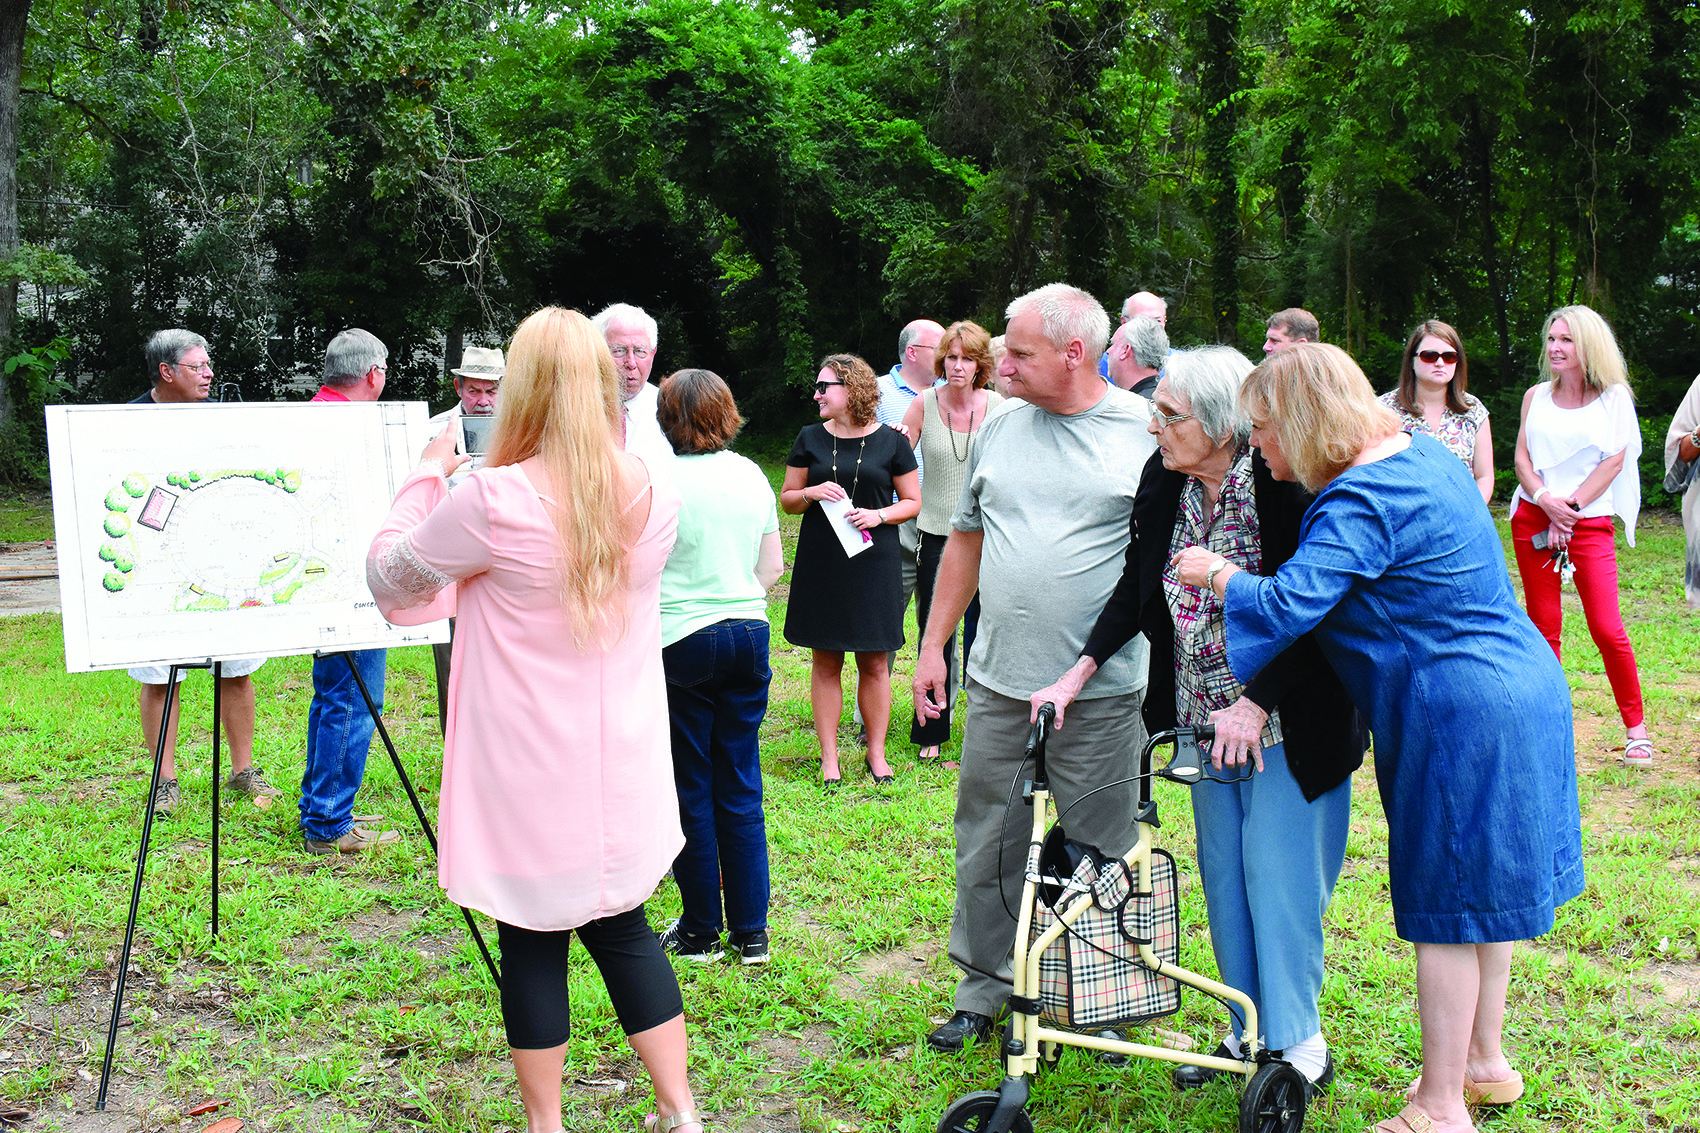 Louise Wade (with the walker), the widow of former Probate Judge Stanley A. Wade, is assisted while looking at a proposed drawing of a pocket park that is being named in honor of her husband, who died Thursday. The groundbreaking was held Friday.